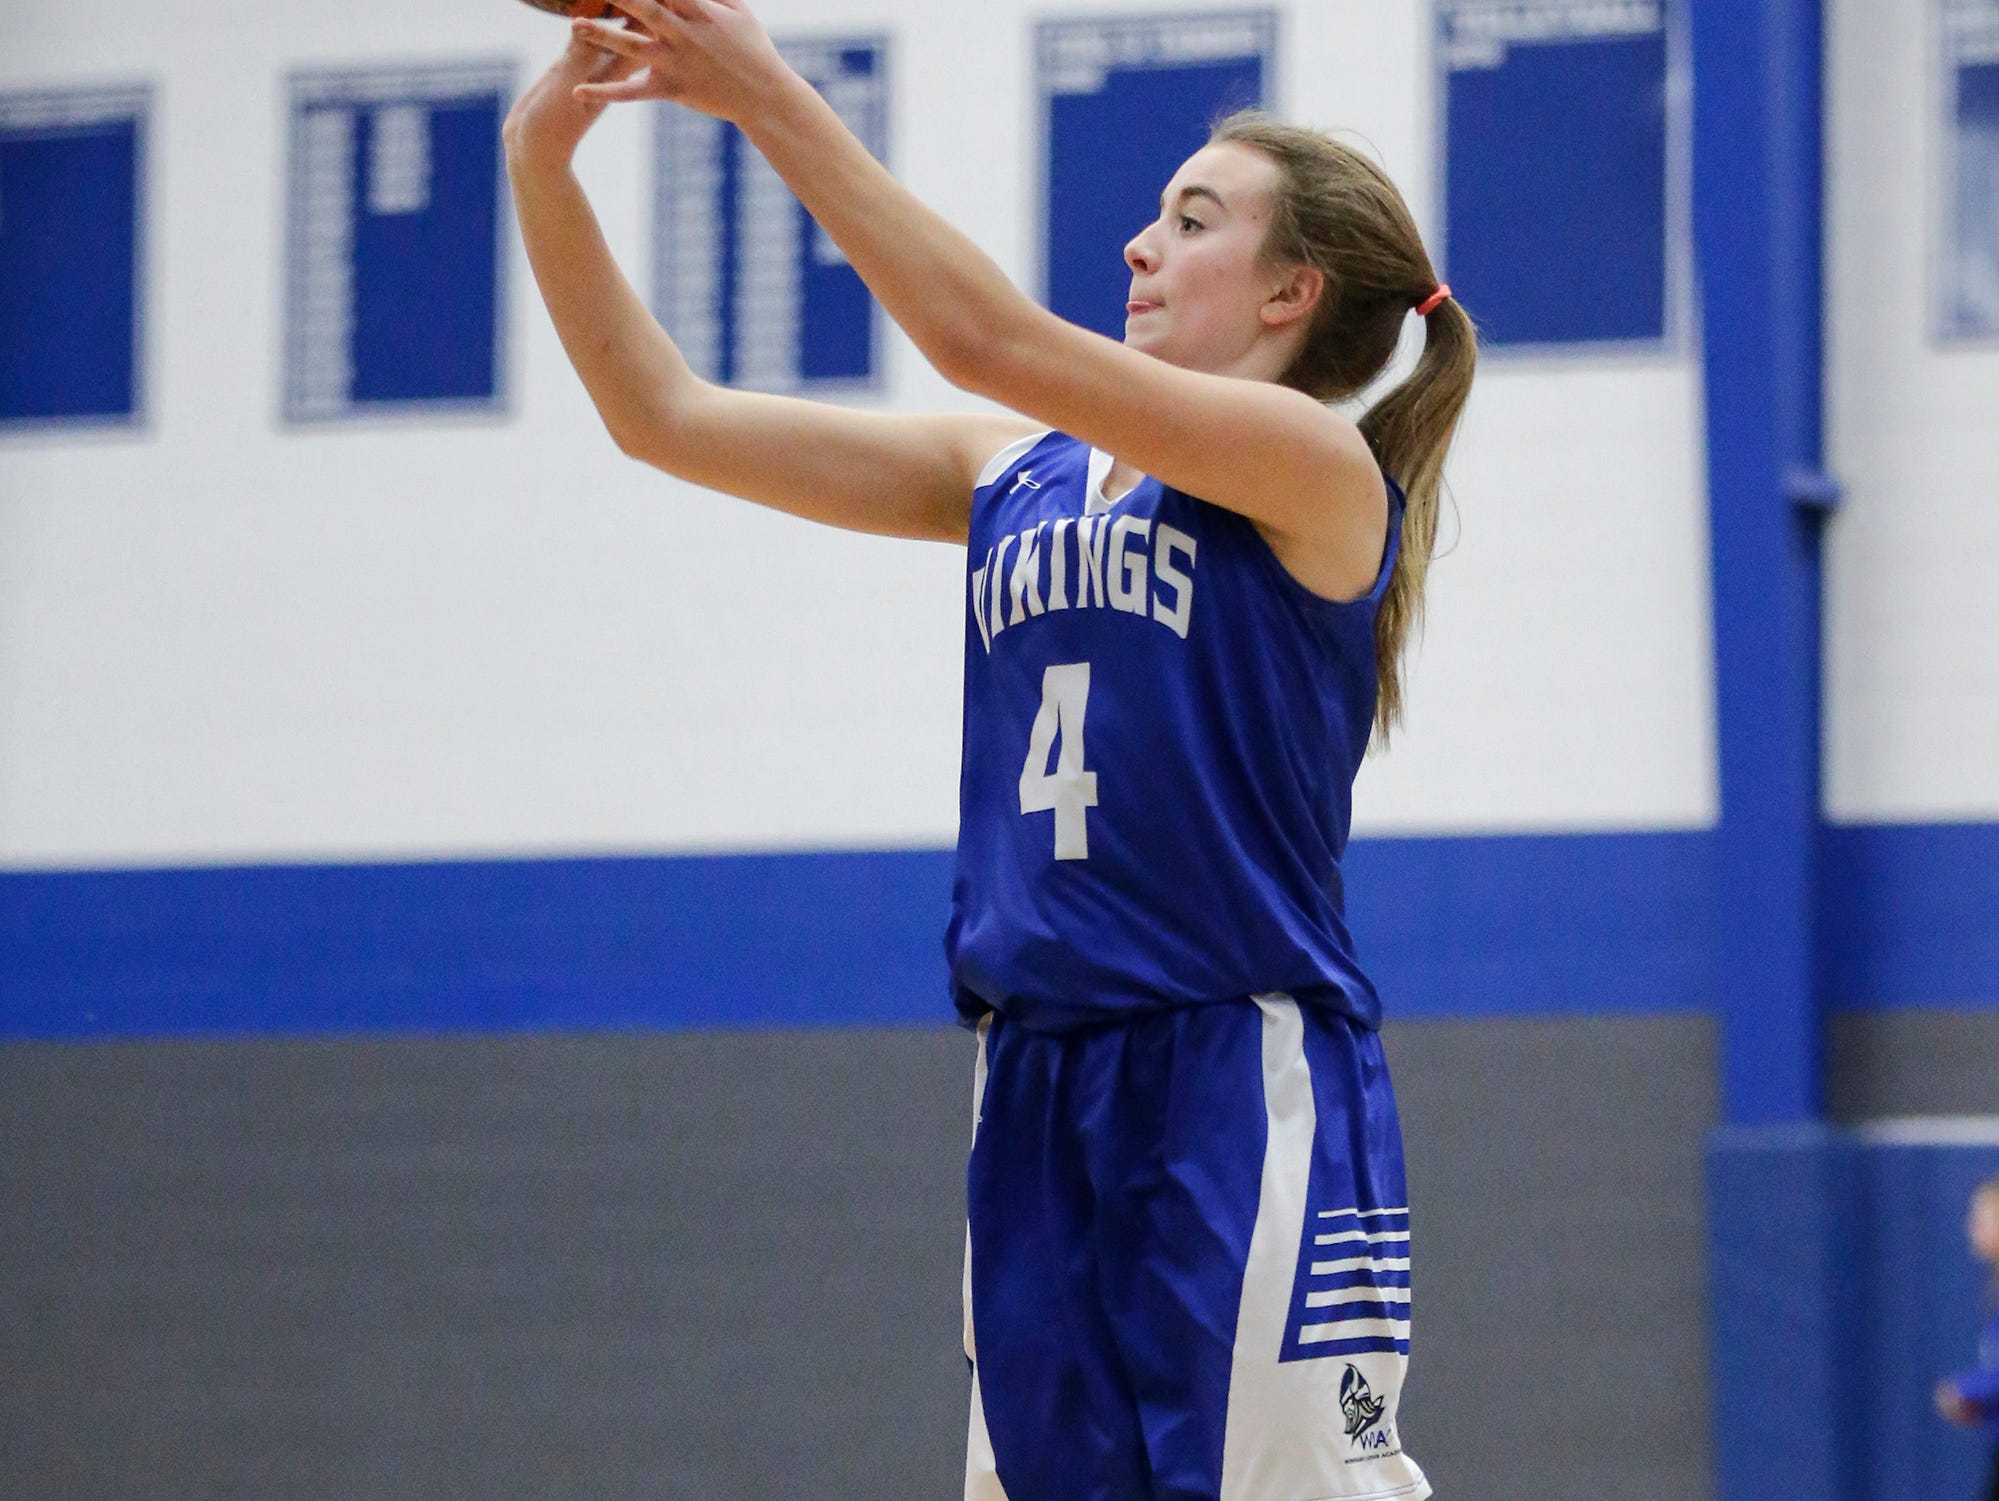 Winnebago Lutheran Academy girls basketball's Rylee Loehr shoots a three pointer against St. Mary's Springs Academy during their game Tuesday, December 18, 2018 in Fond du Lac. Winnebago Lutheran Academy won the game 58-54. Doug Raflik/USA TODAY NETWORK-Wisconsin